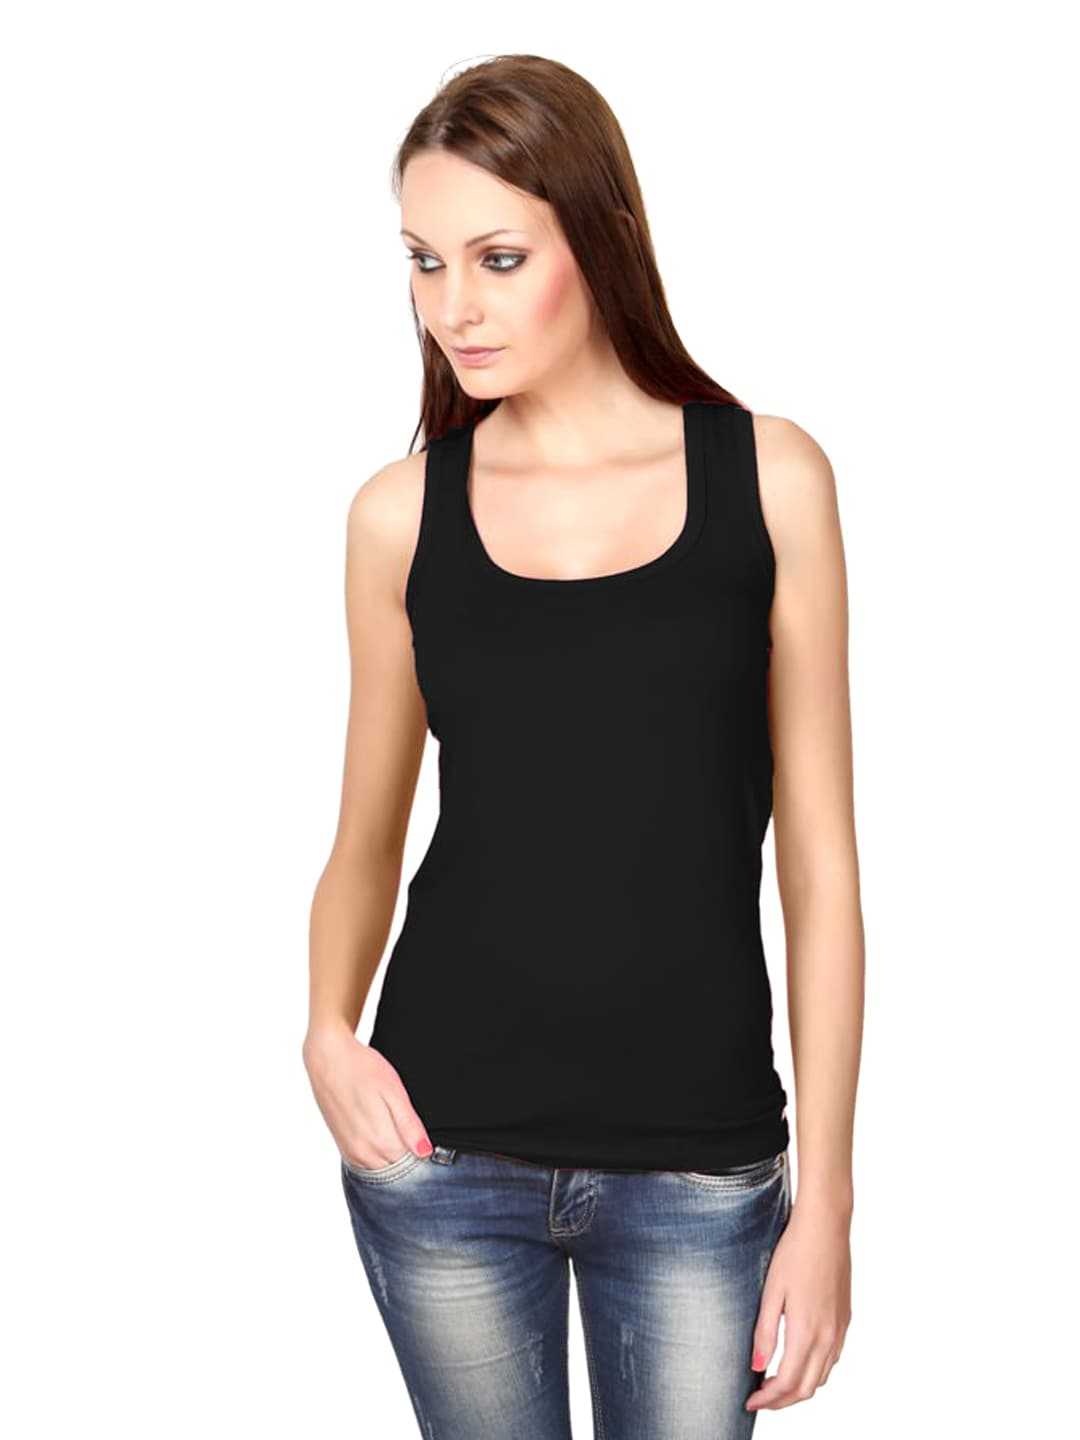 Amazon.com: black tank tops women: Clothing, Shoes & Jewelry